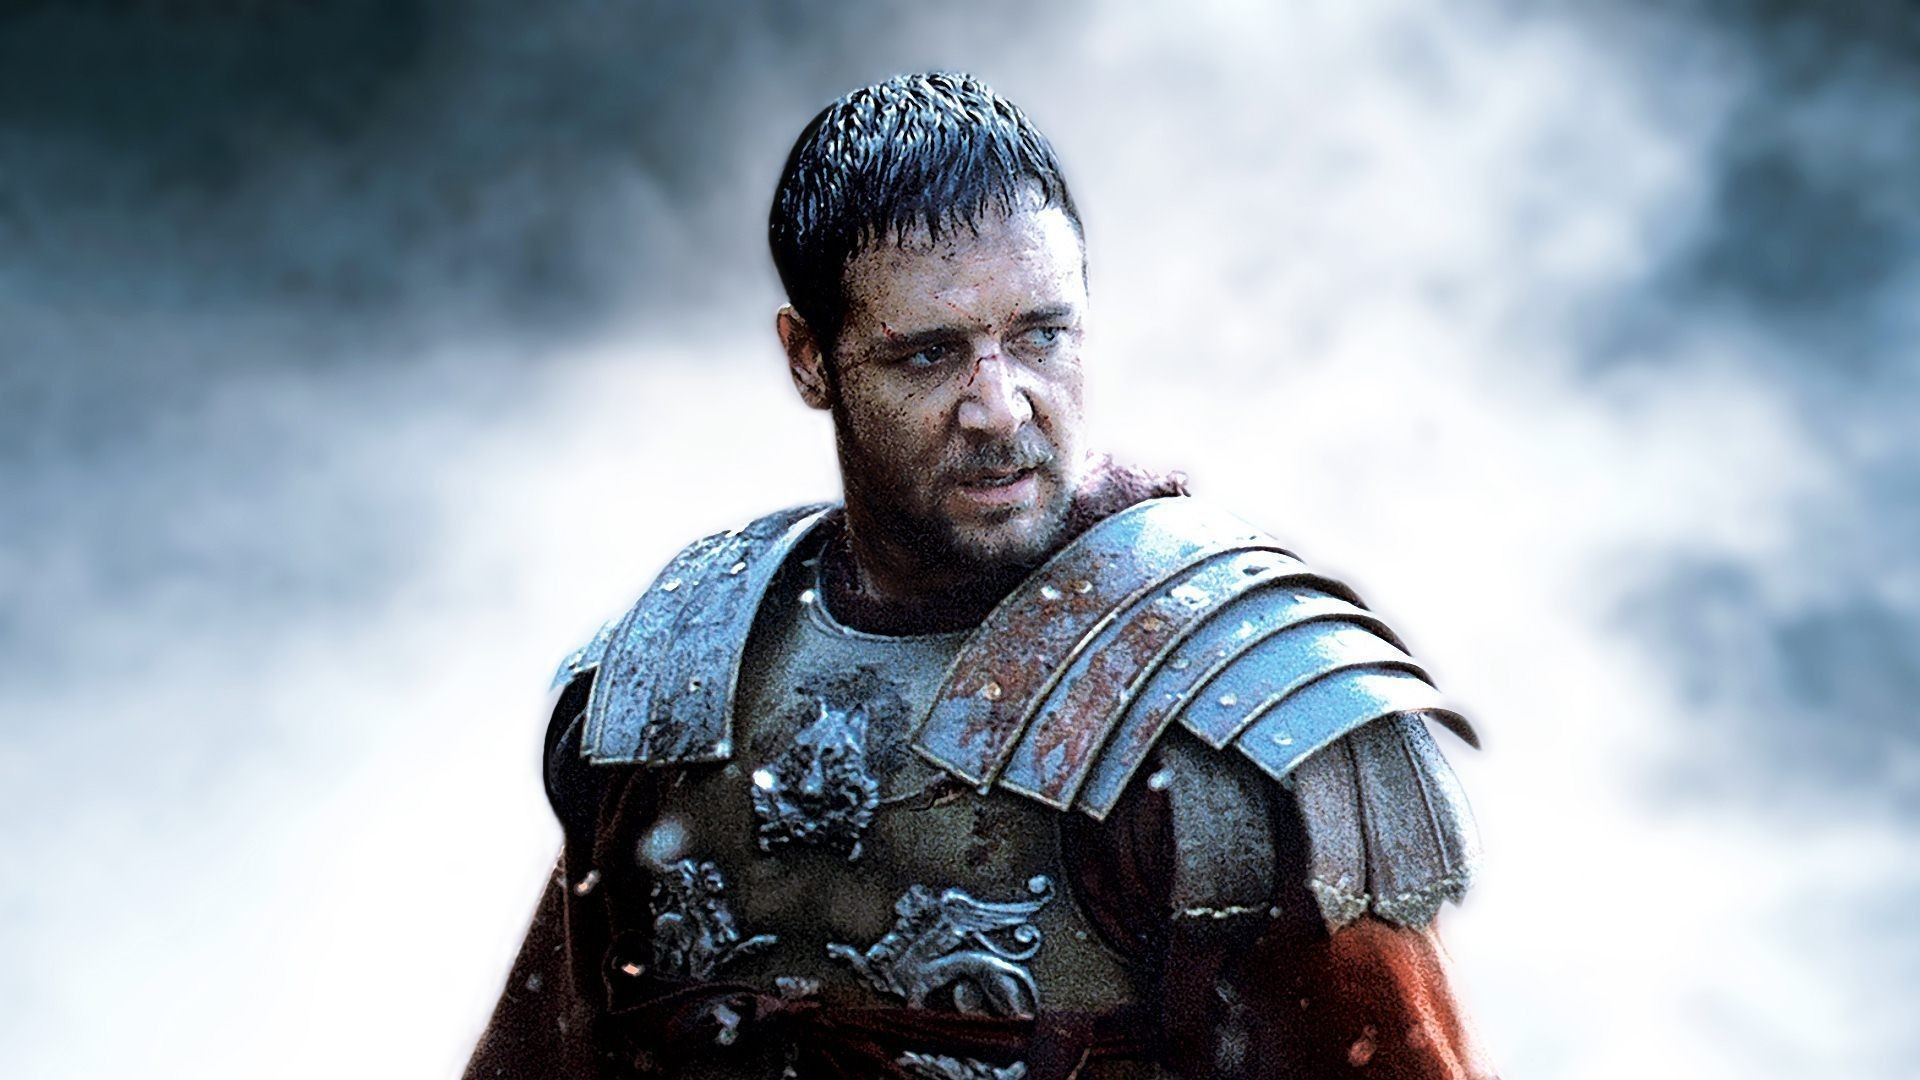 Movies Gladiator Movie Russell Crowe 1439x1403 Wallpaper: Gladiator HD Wallpaper (75+ Images